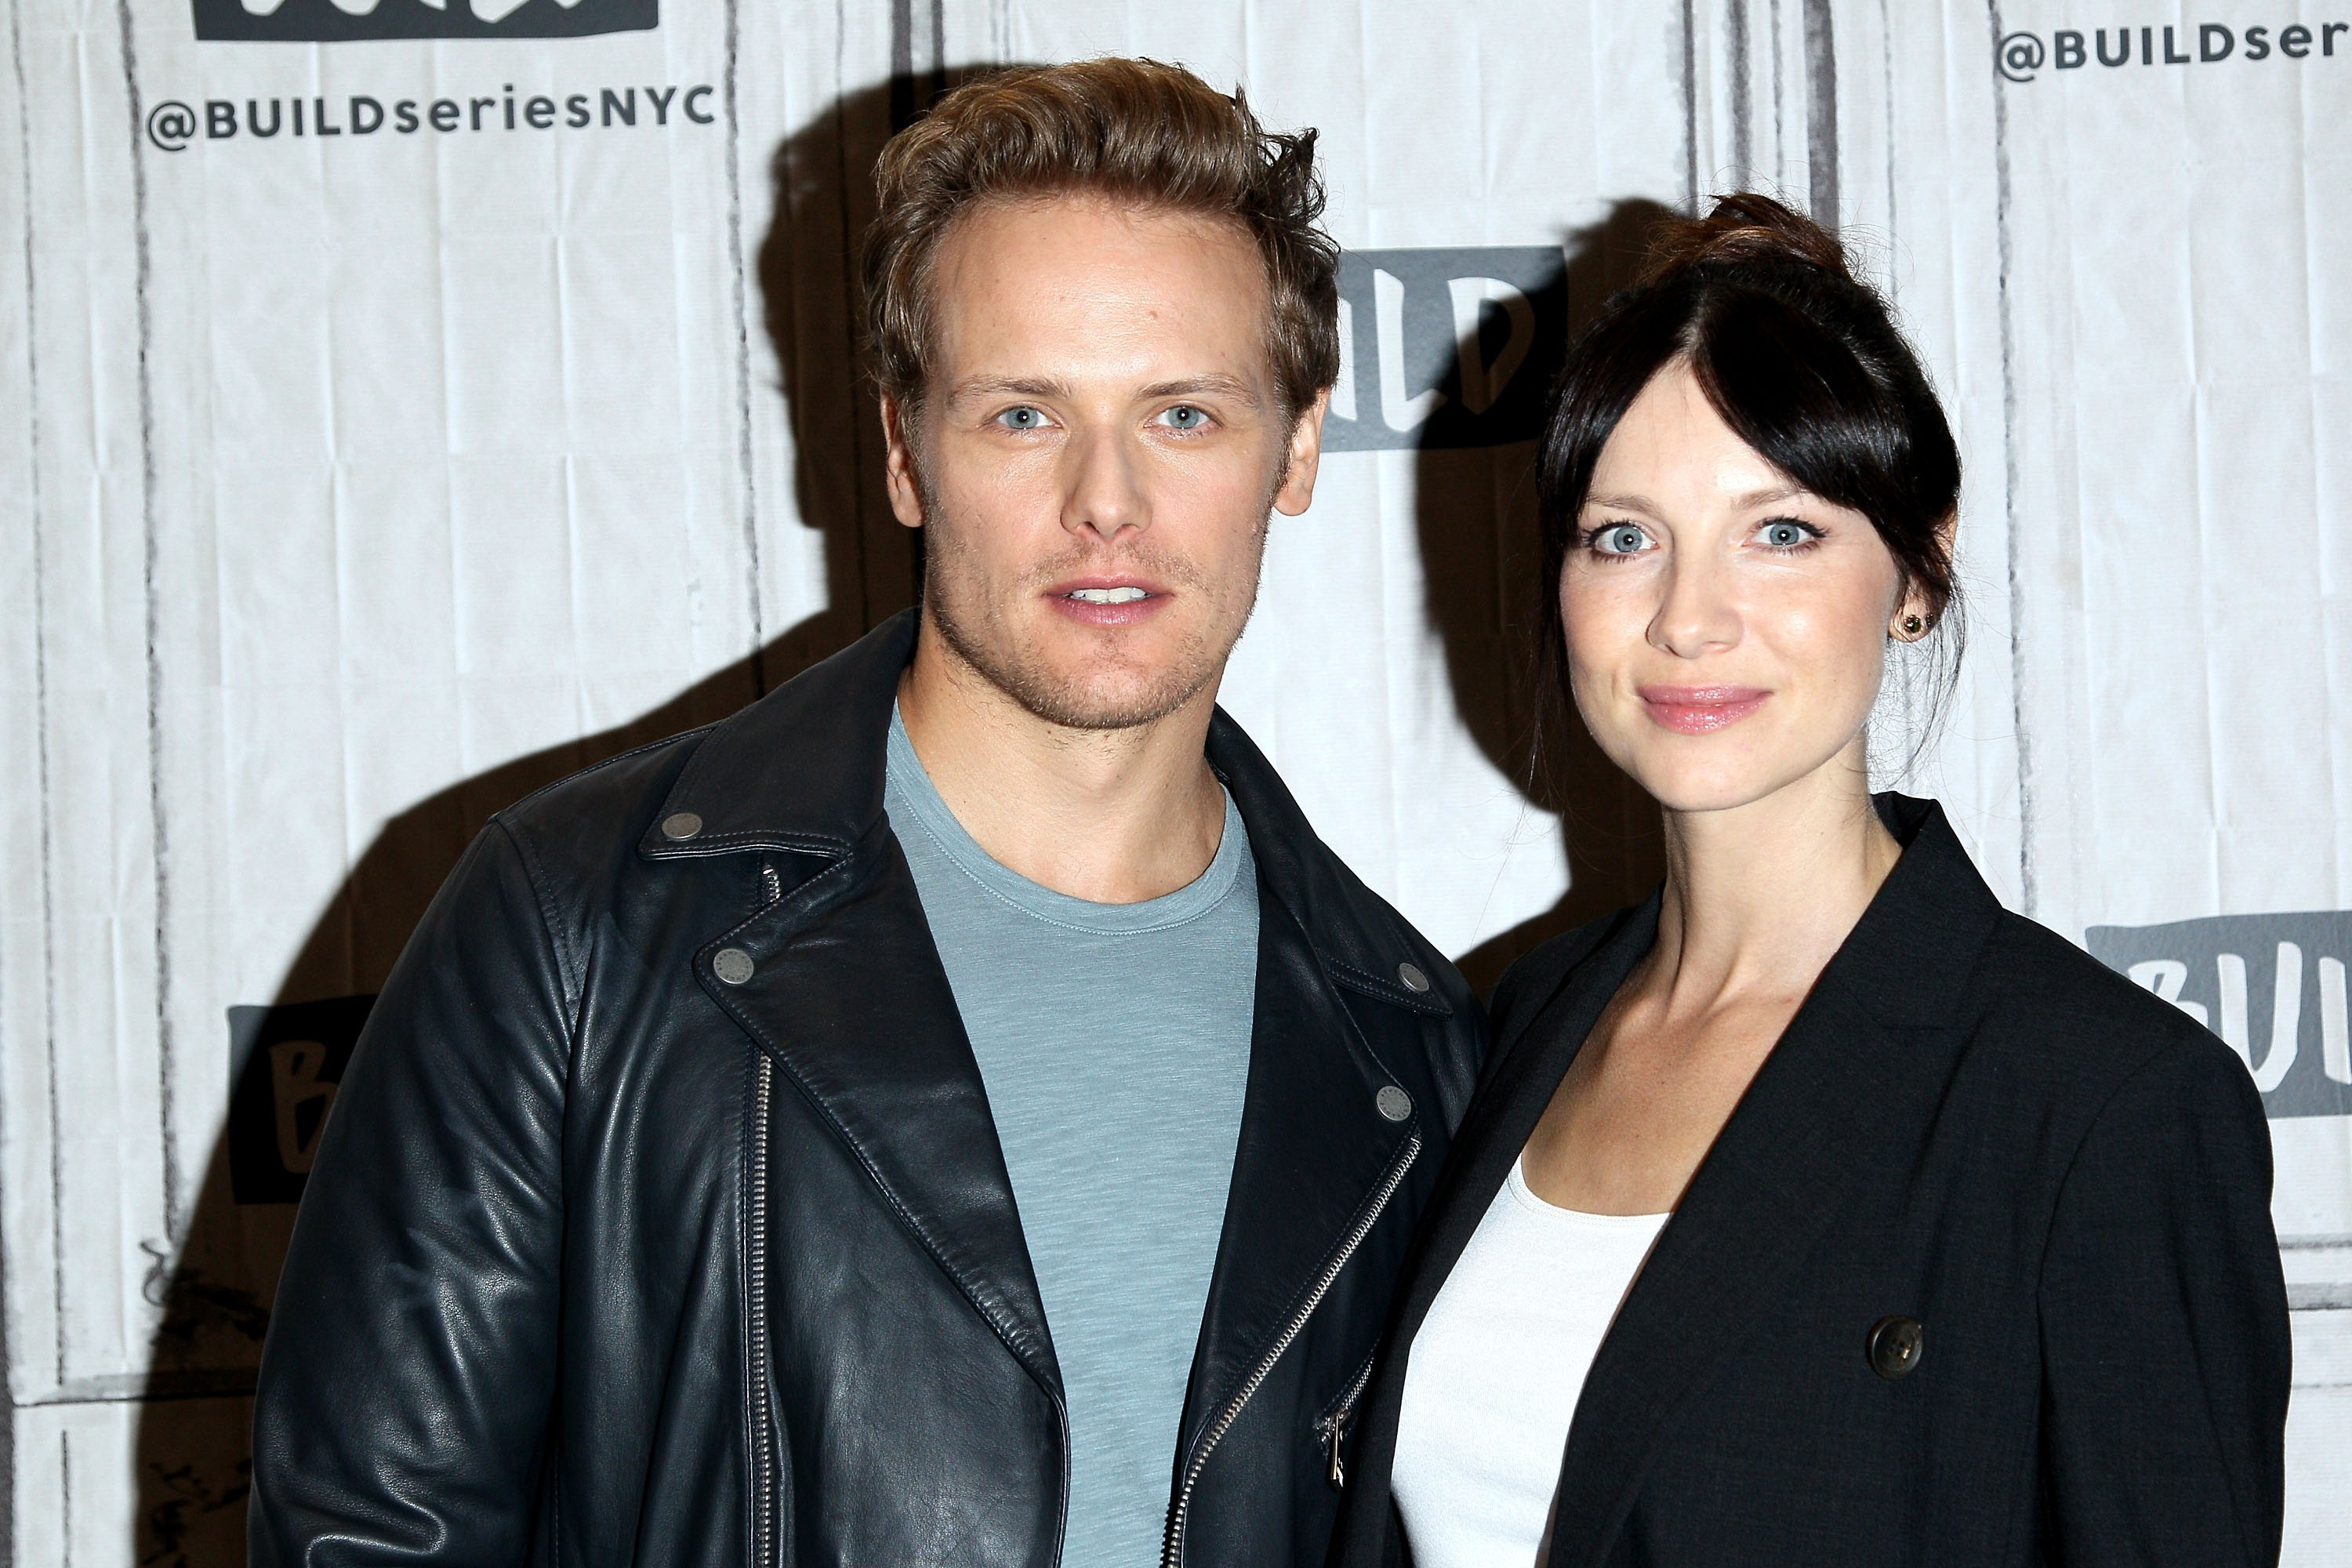 """NEW YORK, NY - SEPTEMBER 06:  Build presents Sam and Balfe Heughan discussing """"Outlander"""" at Build Studio on September 6, 2017 in New York City.  (Photo by Steve Mack/FilmMagic)"""